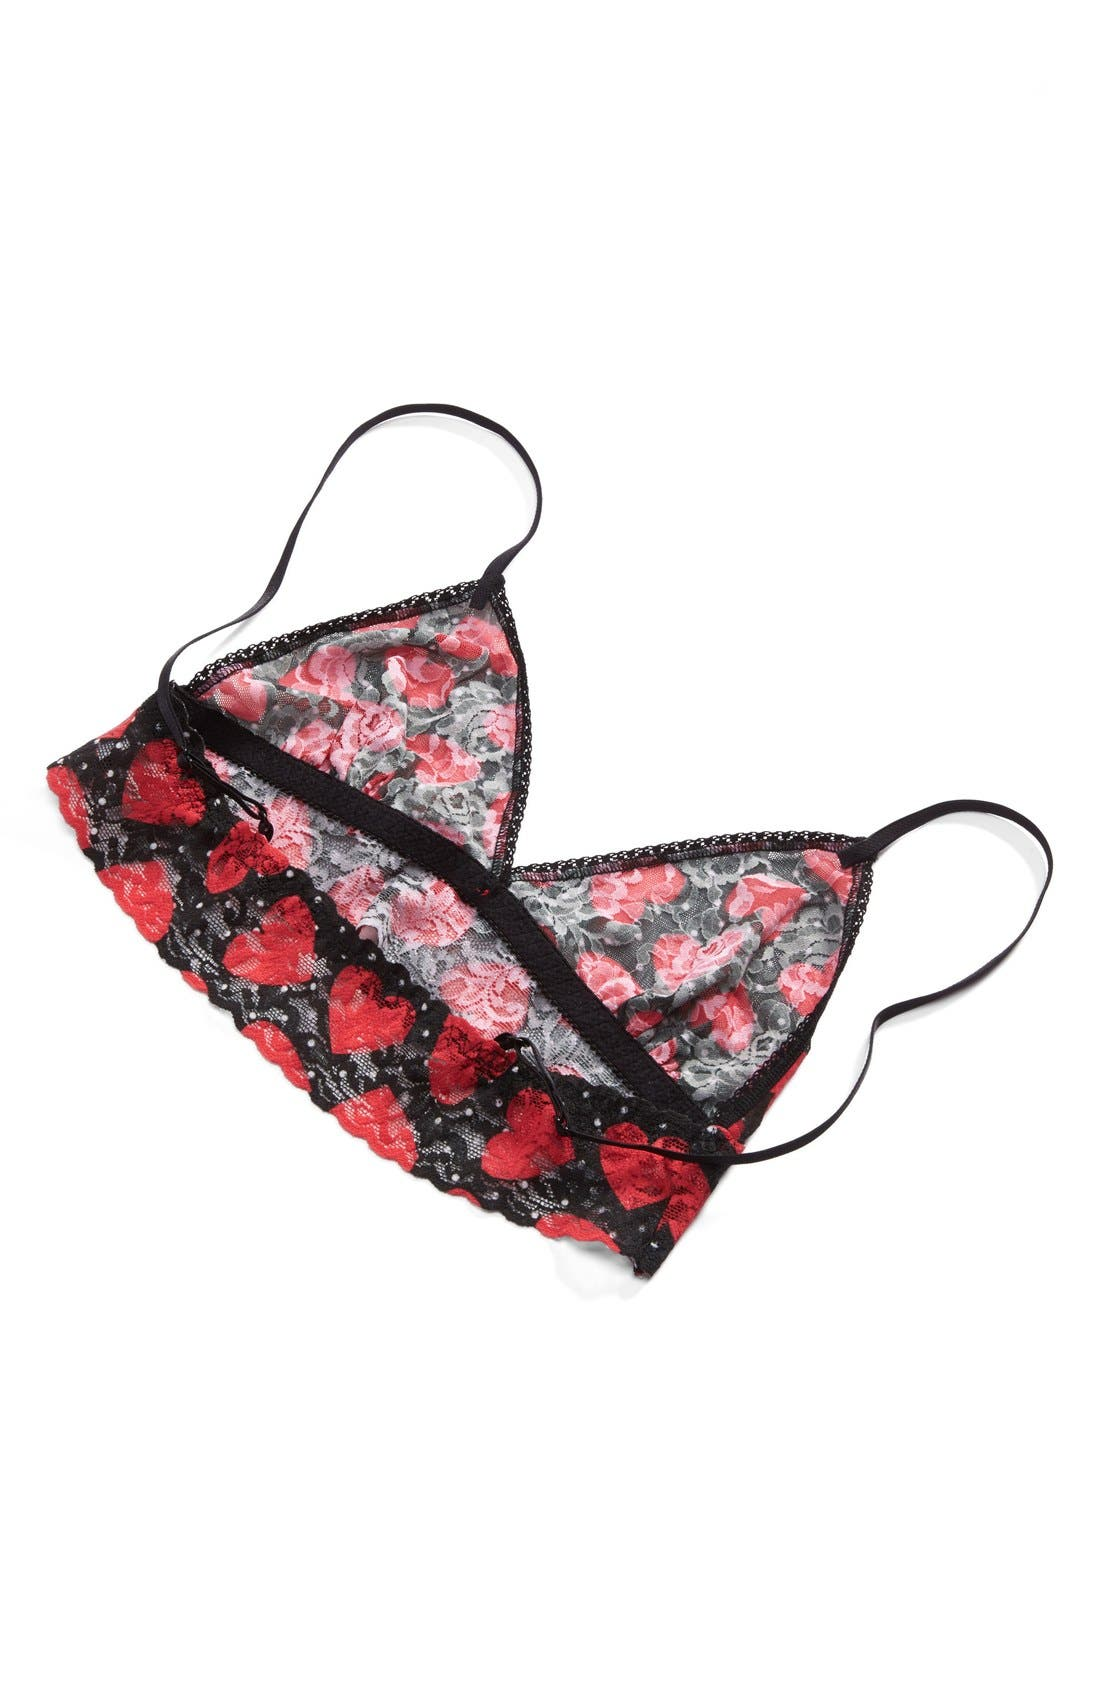 Queen of Hearts Bralette,                             Alternate thumbnail 4, color,                             Black/ Red